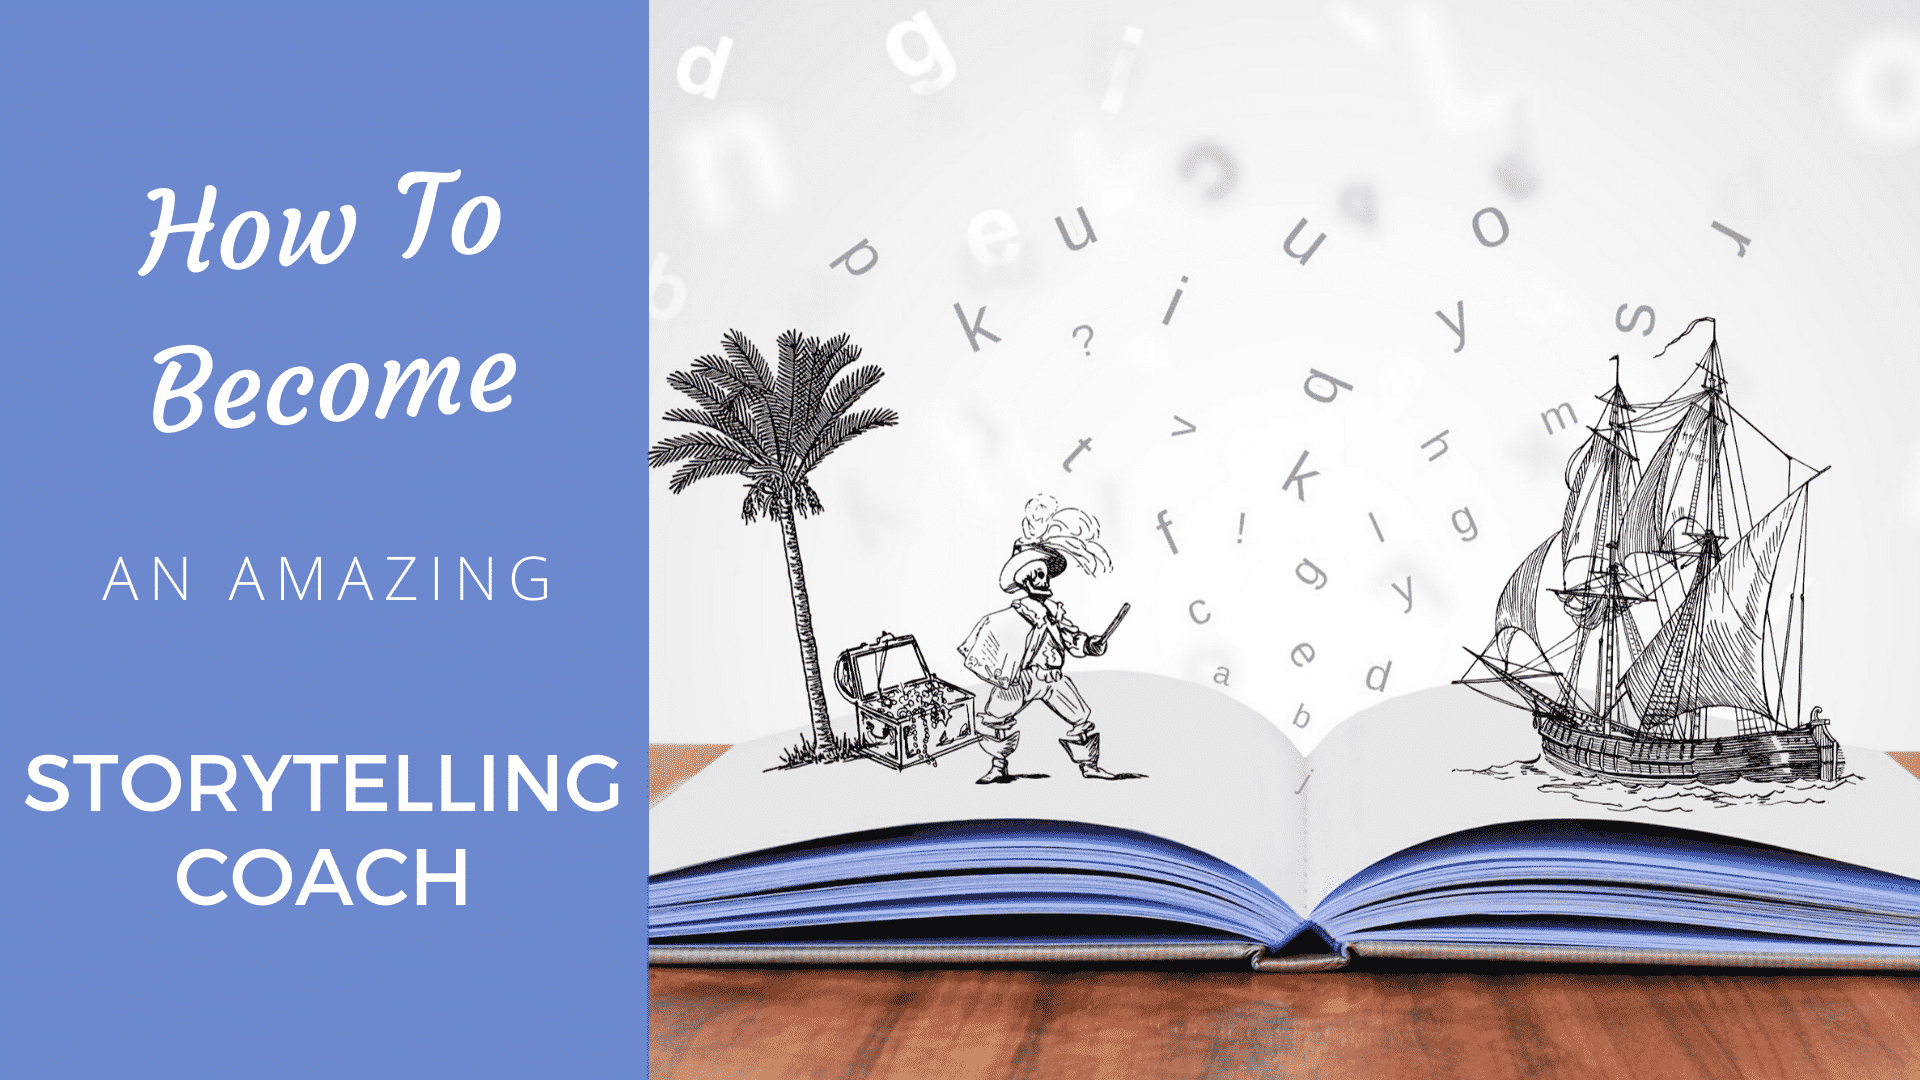 How to Become an Amazing Storytelling Coach [2021-22]? storytelling coach